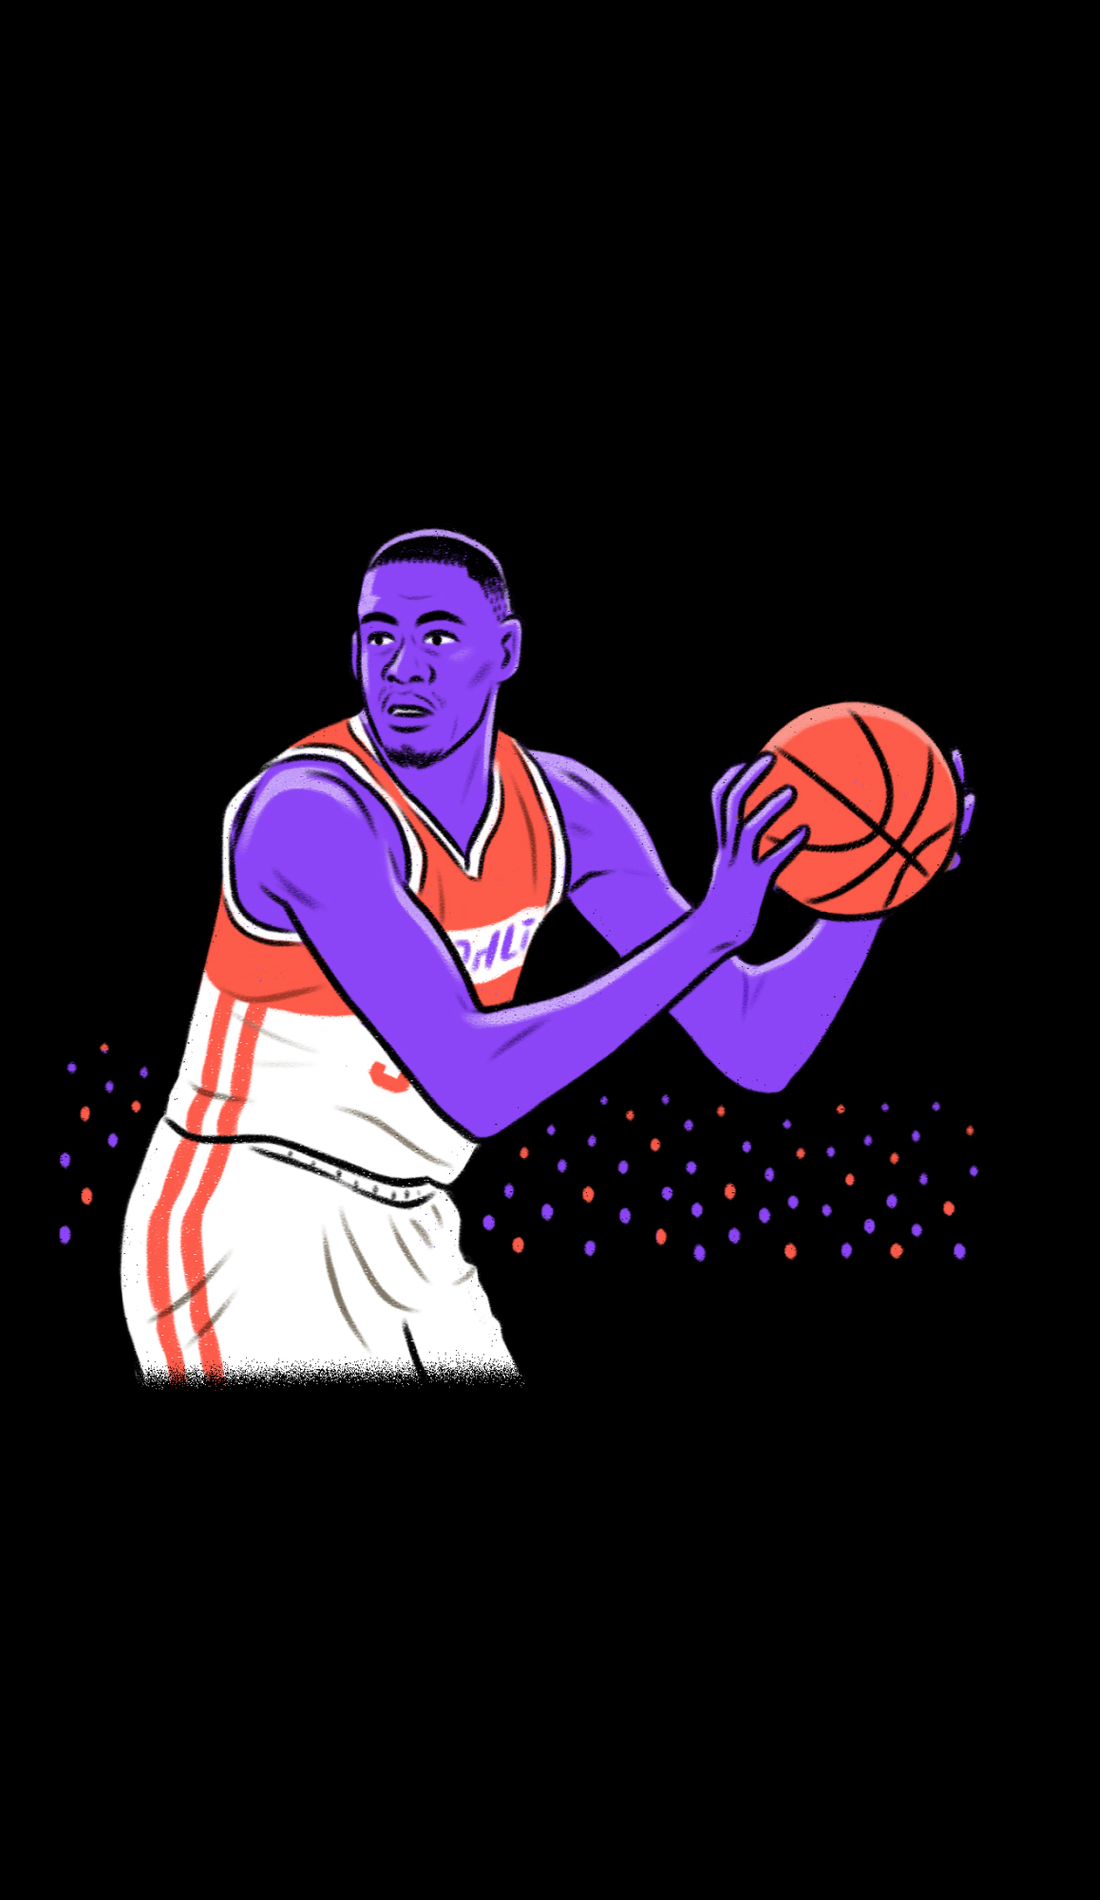 A Mount St. Marys Mountaineers Basketball live event